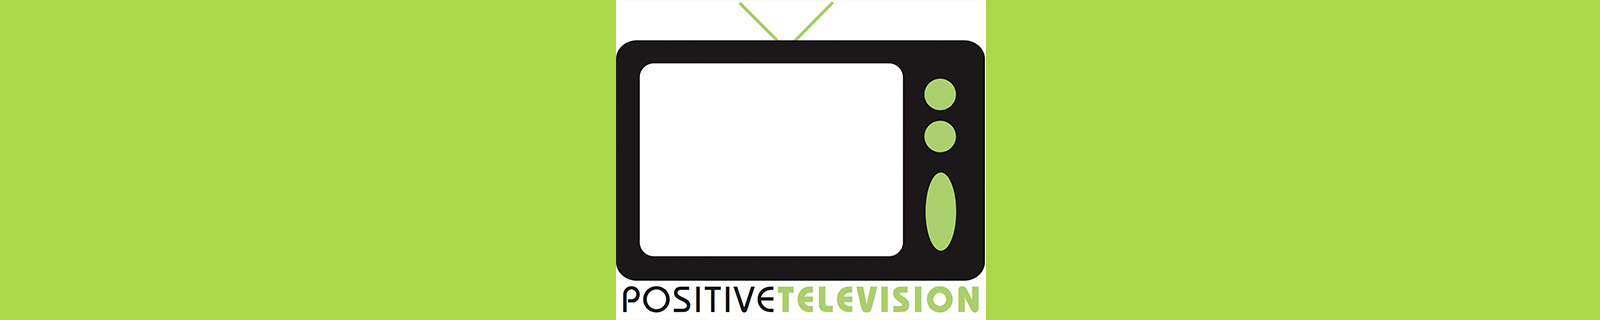 POSITIVE TELEVISION